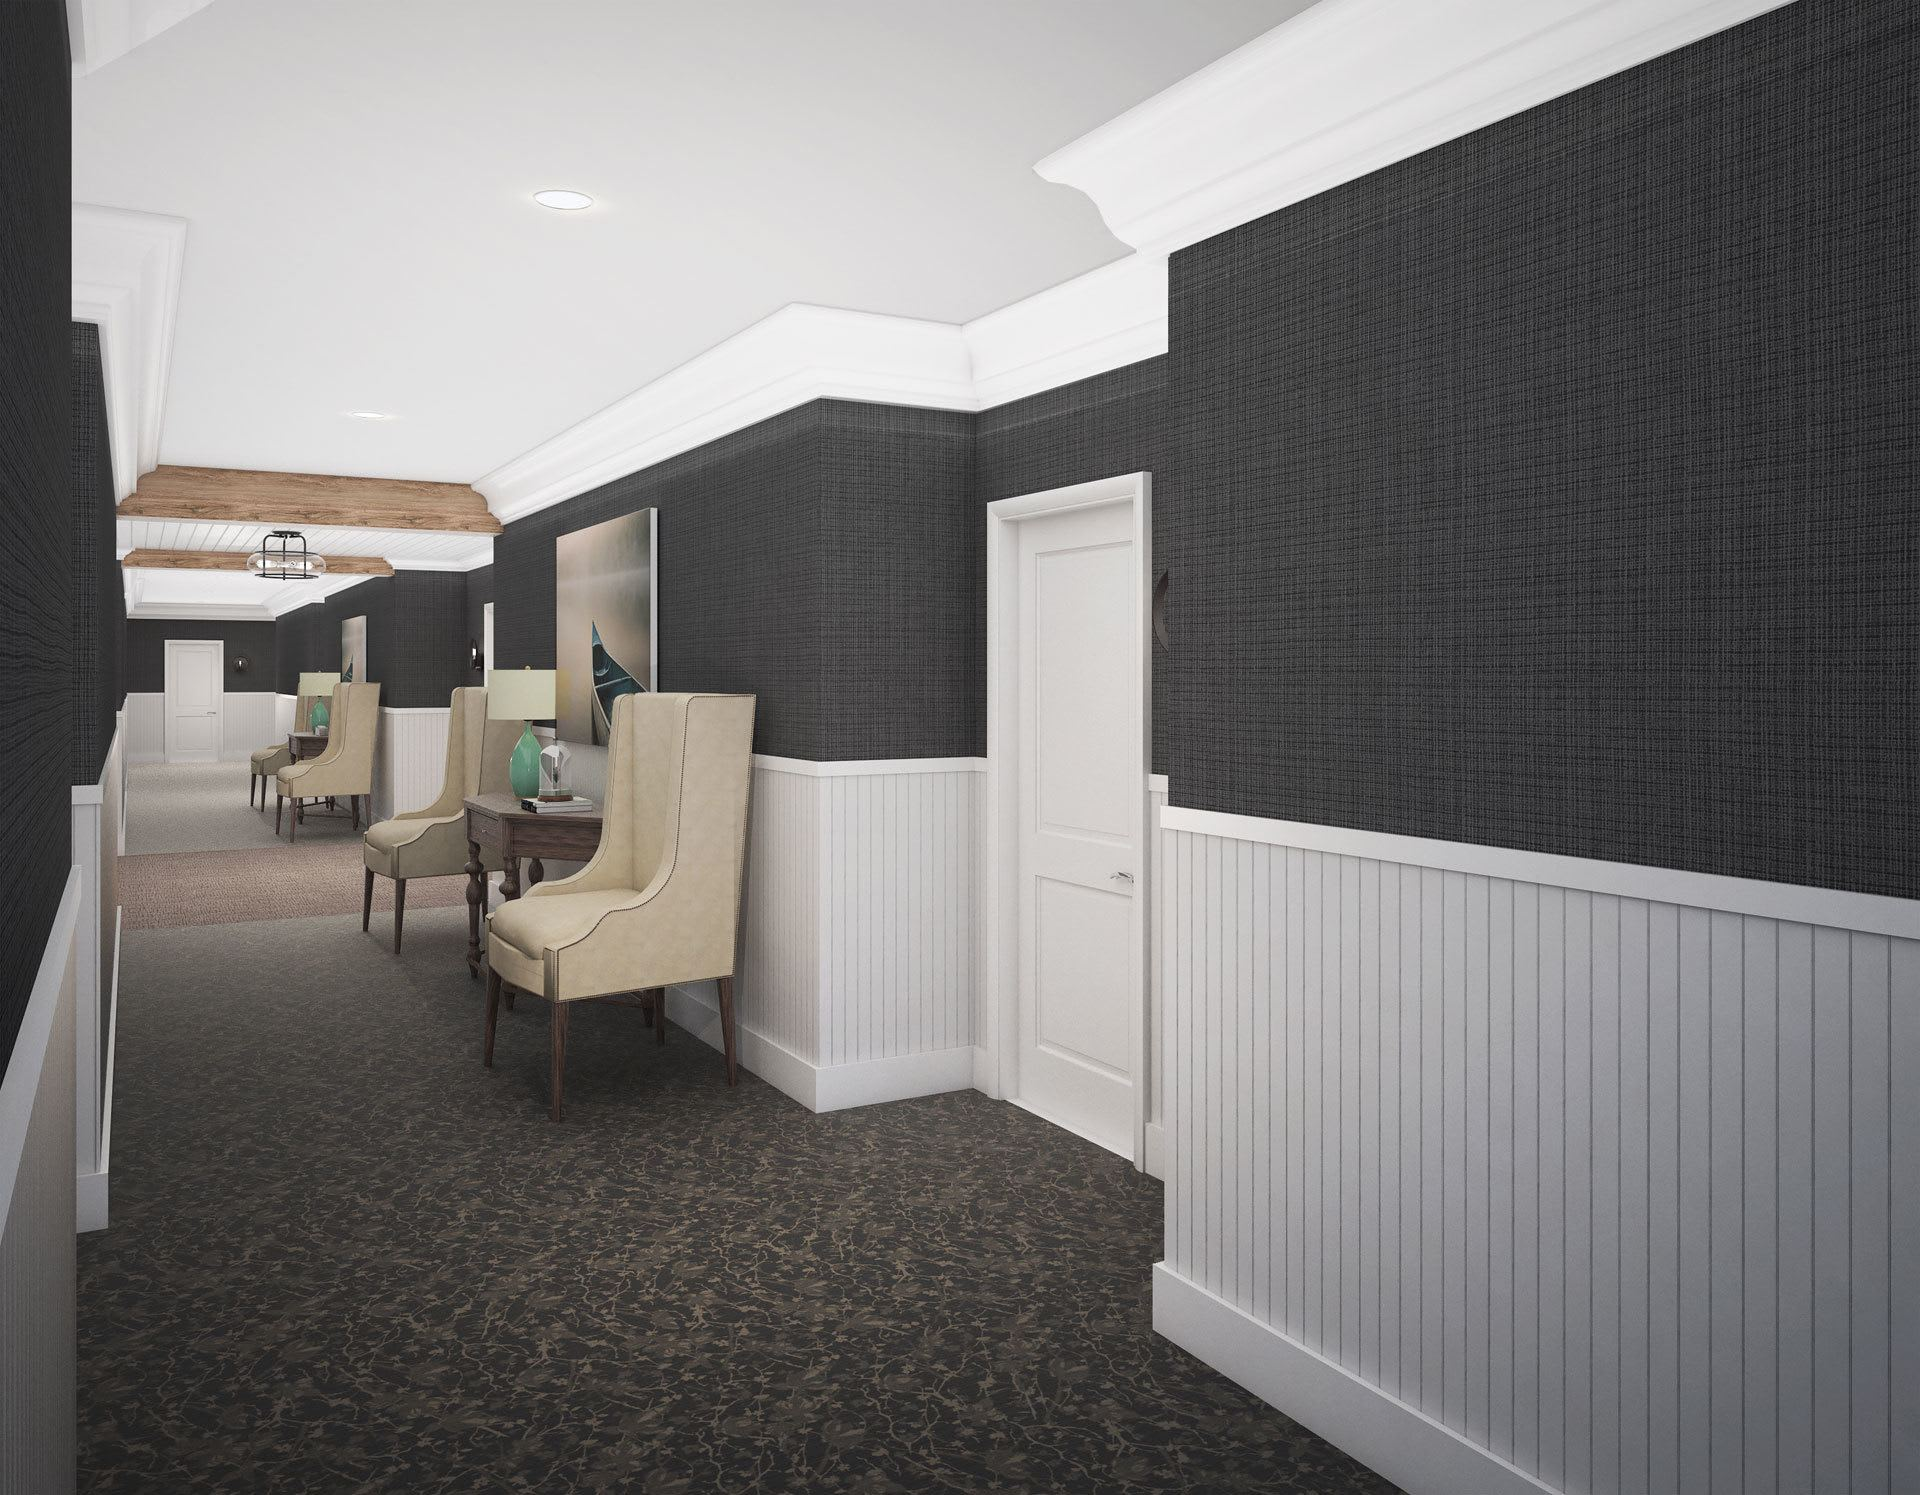 Corridor Render The Phoenix at James Creek